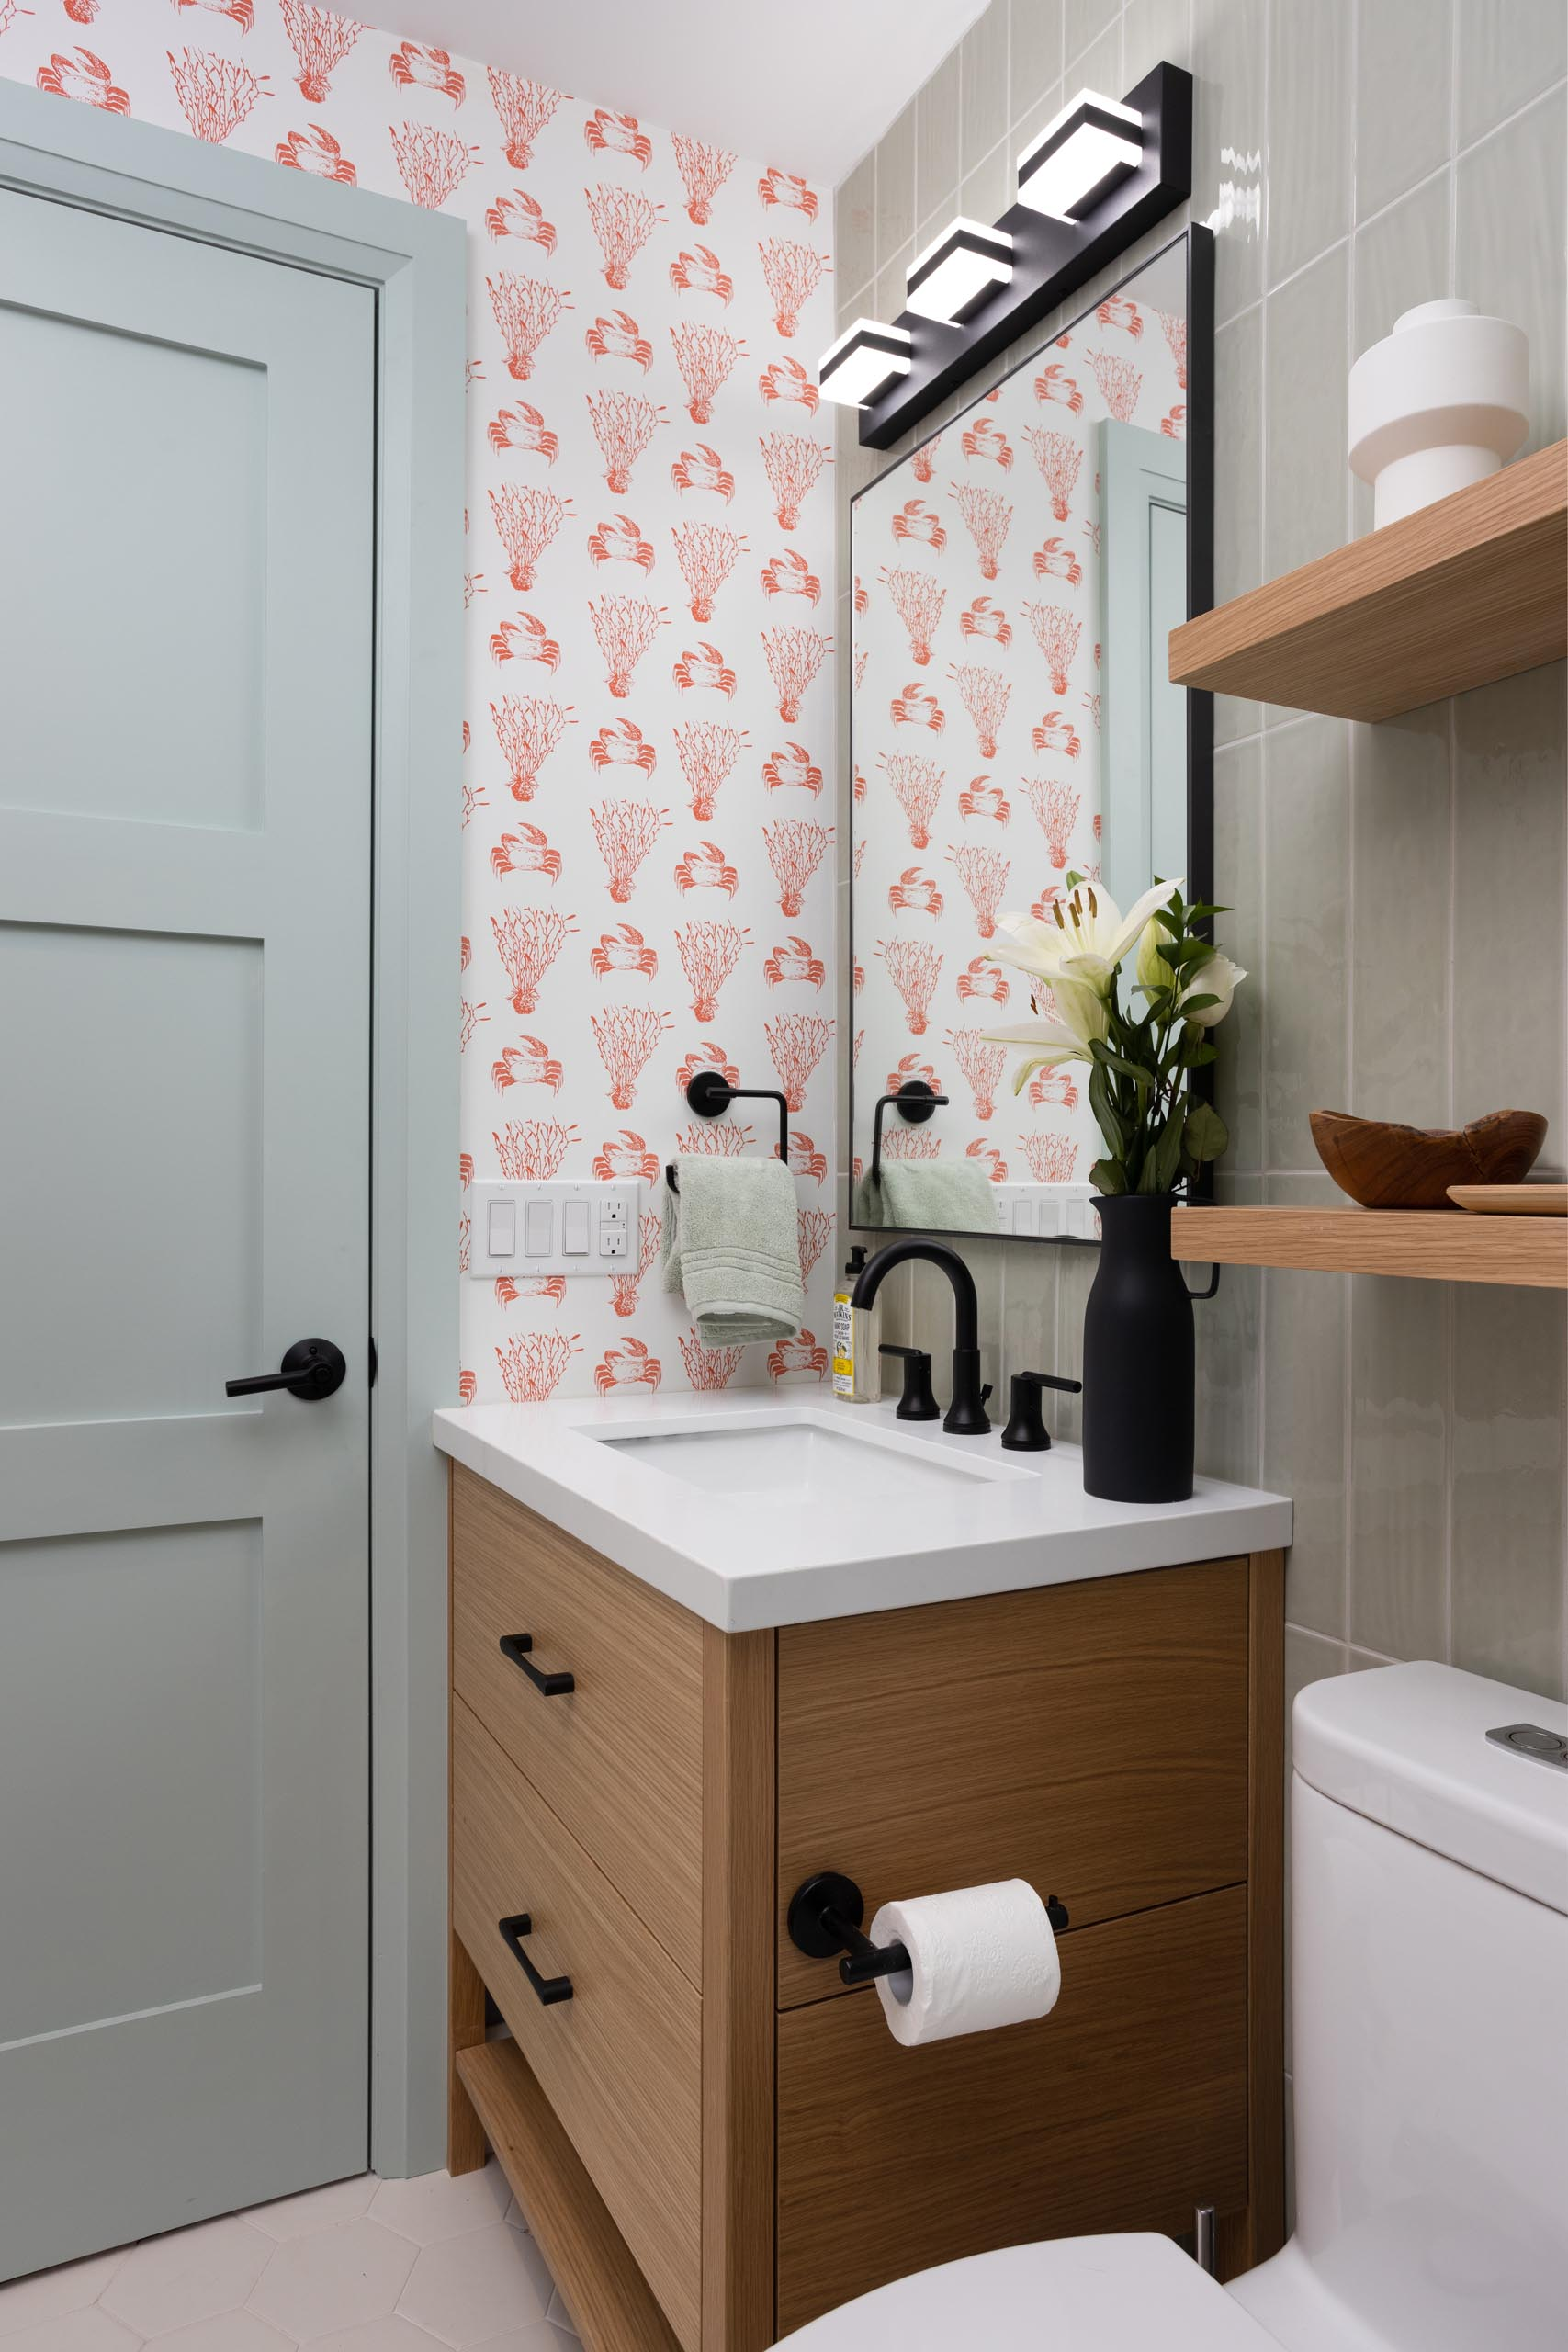 In this bathroom there's black accents and light green tiles that cover the walls, while a wallpaper with a crustacean and coral print adds a quirky colorful touch.